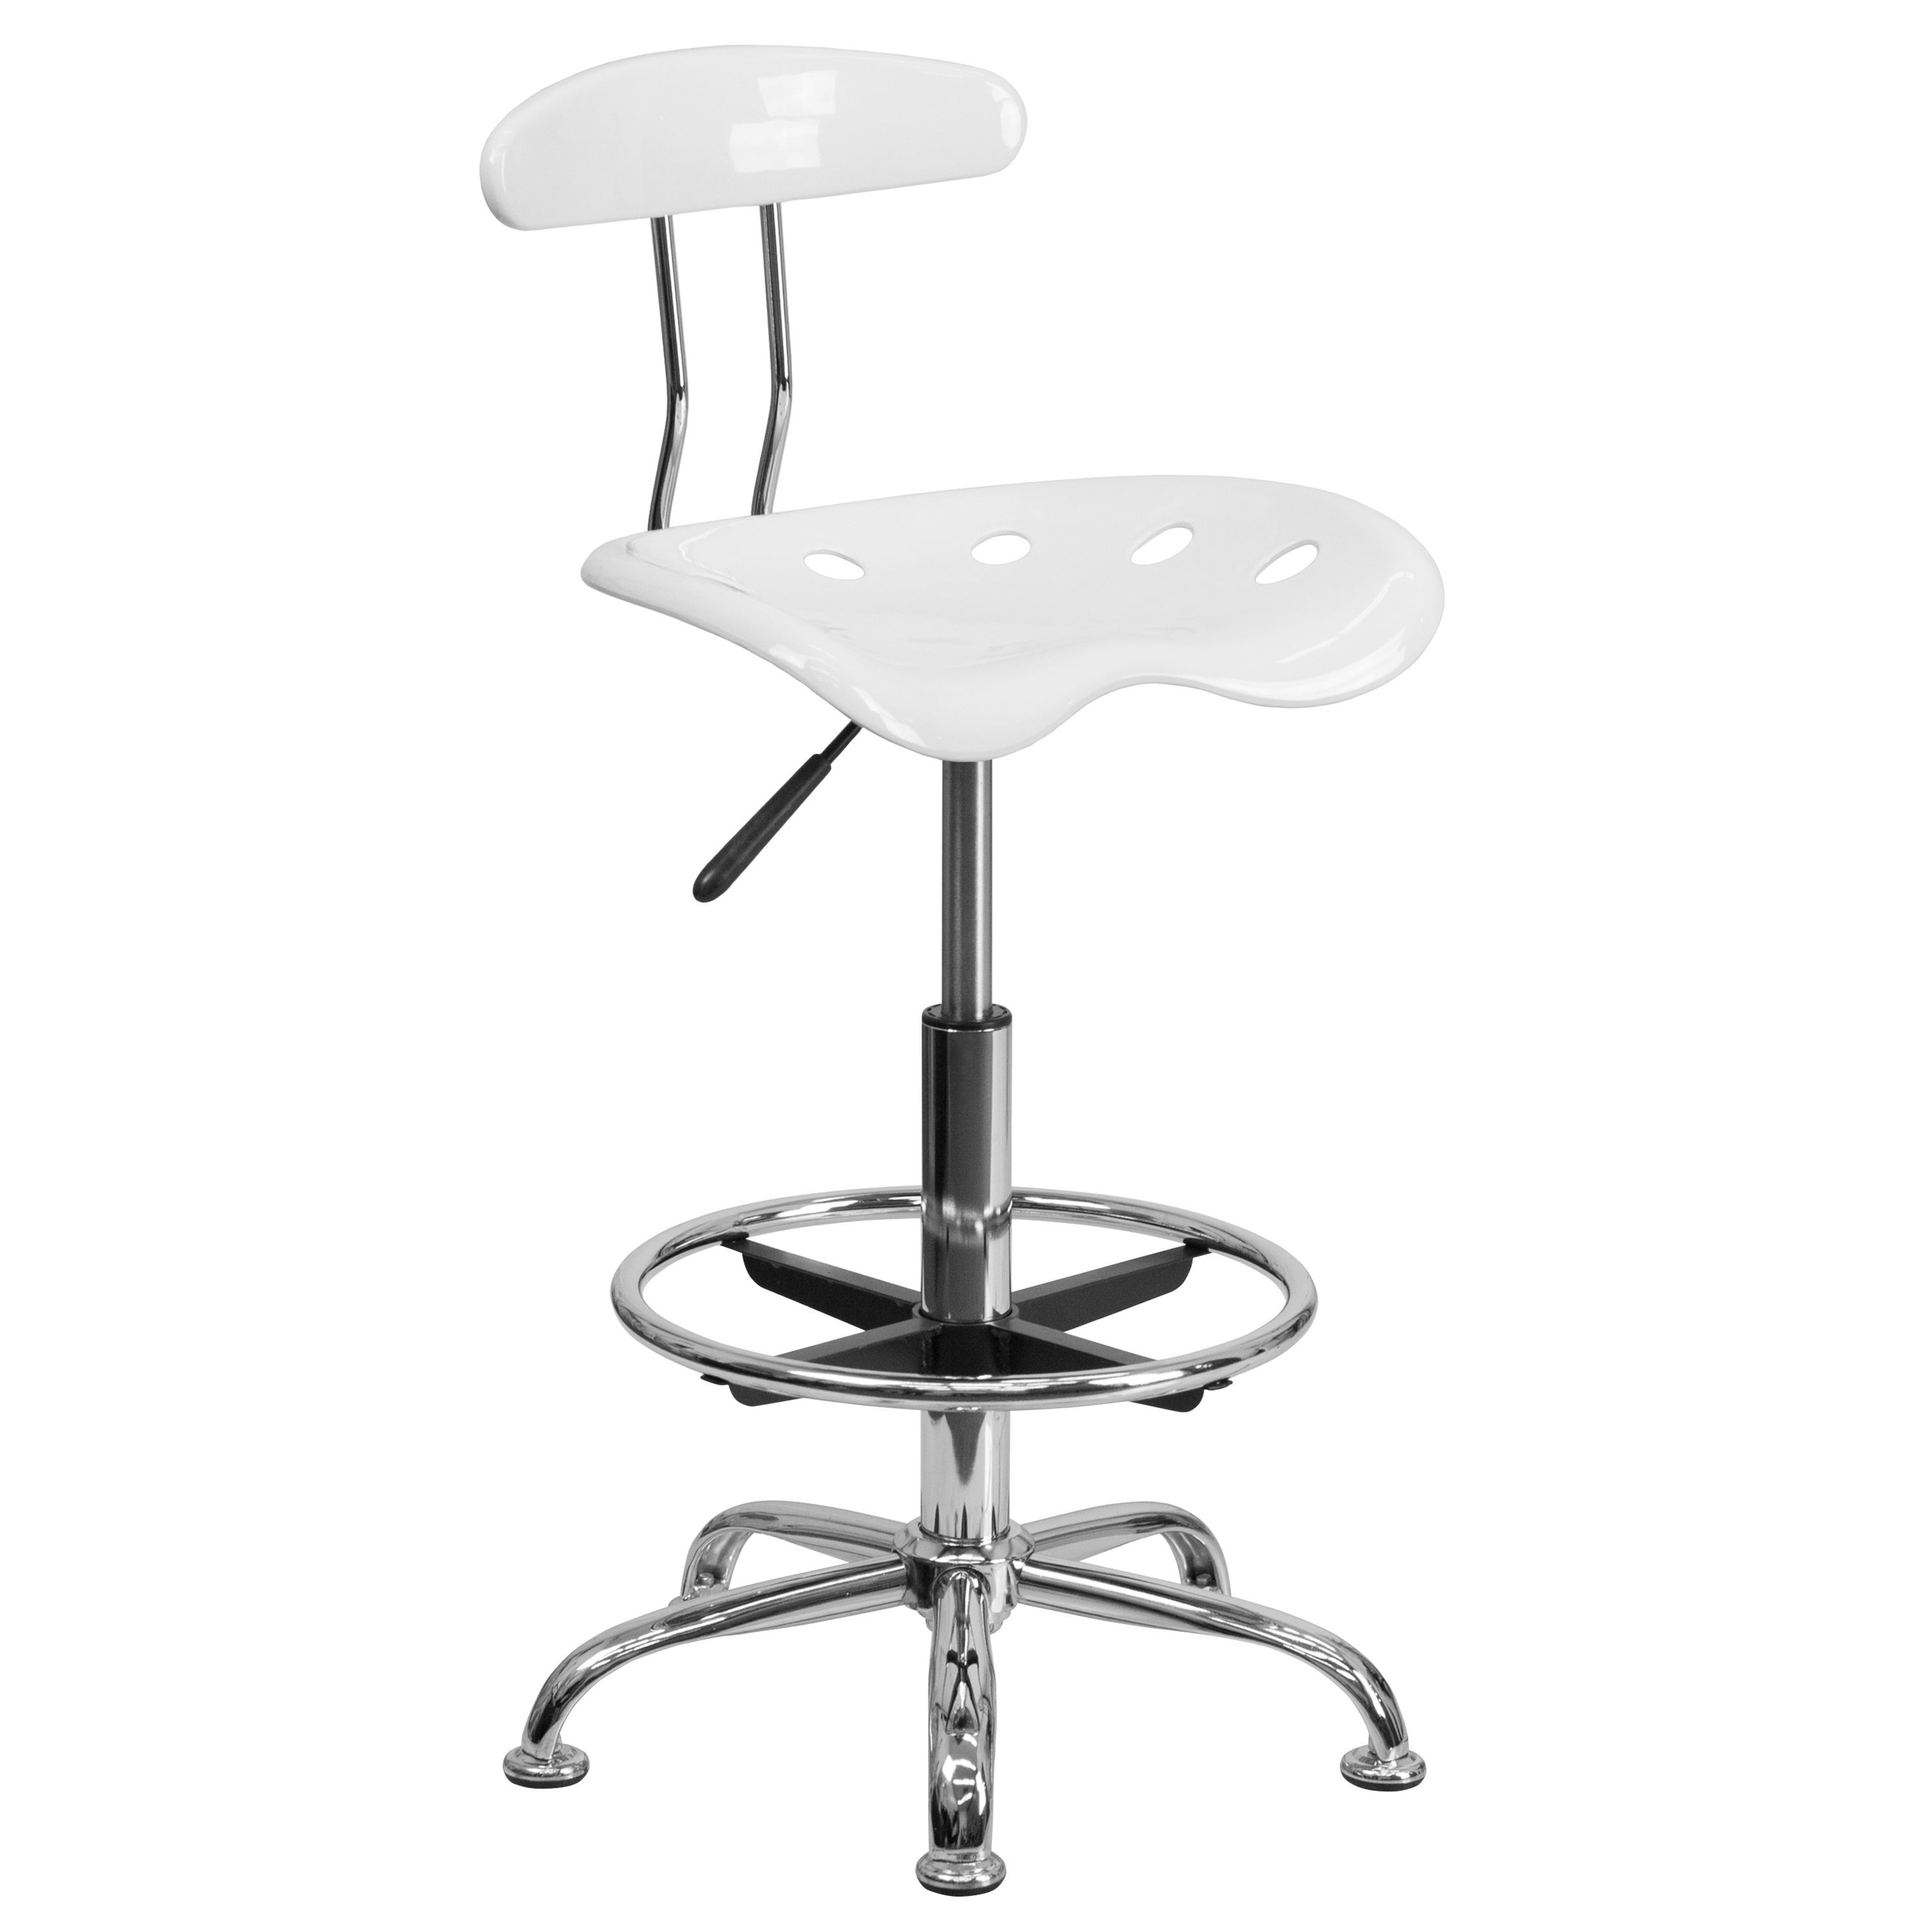 Vibrant White And Chrome Bar Stool Height Drafting Stool with Tractor Seat